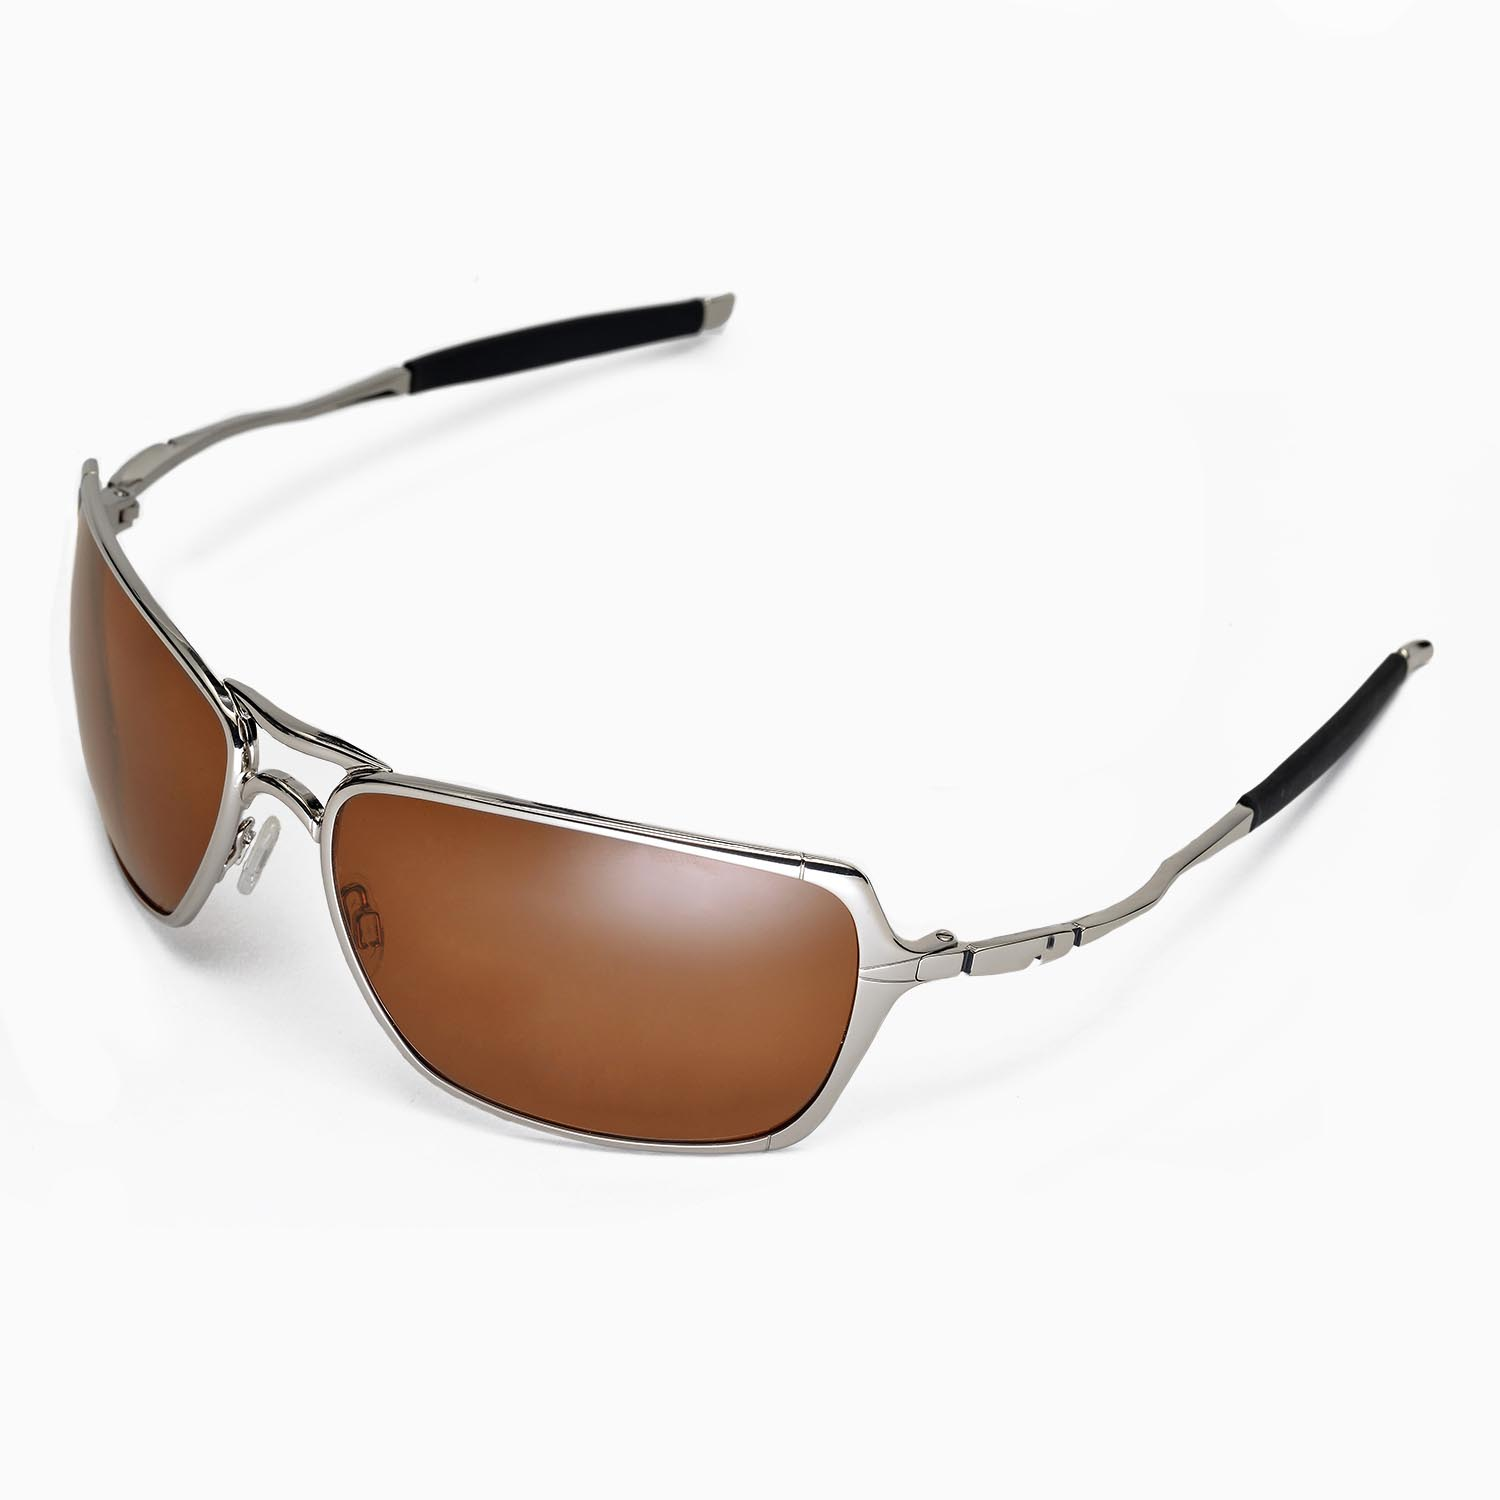 20d5df4ad389e Details about New Walleva Polarized Brown Replacement Lenses For Oakley  Inmate Sunglasses